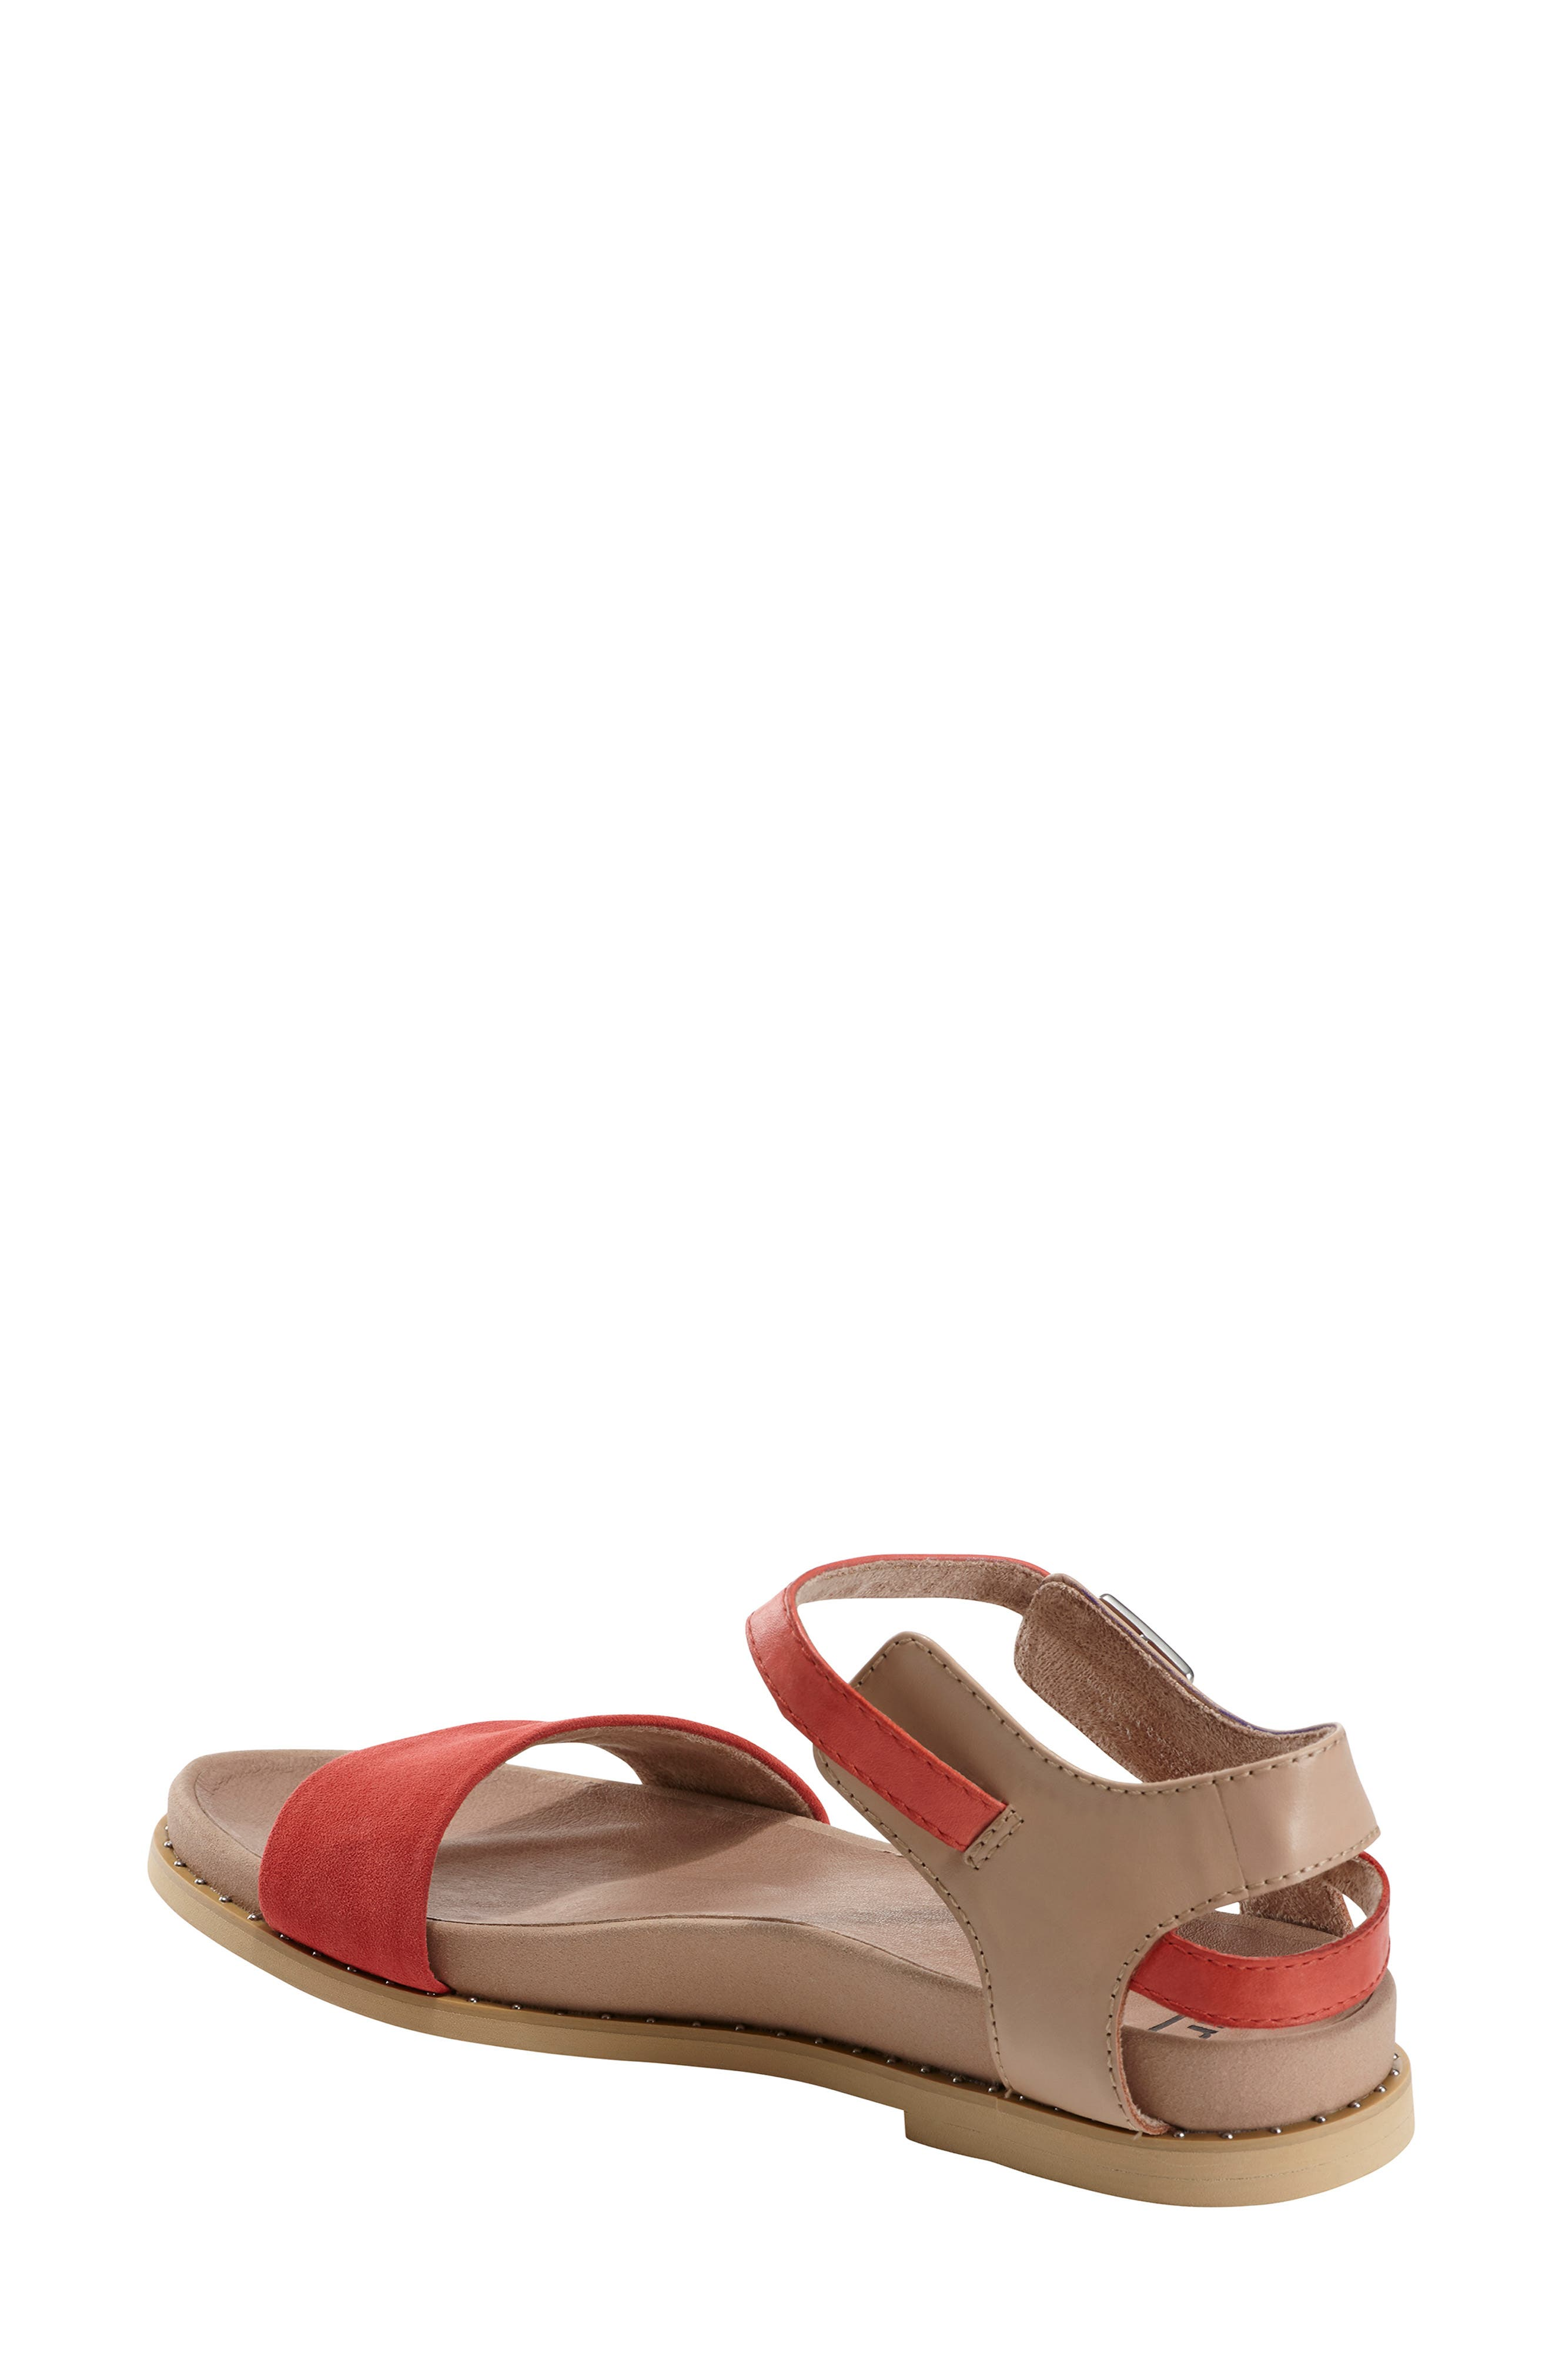 EARTH<SUP>®</SUP>, Cameo Sandal, Alternate thumbnail 2, color, BRIGHT CORAL SUEDE